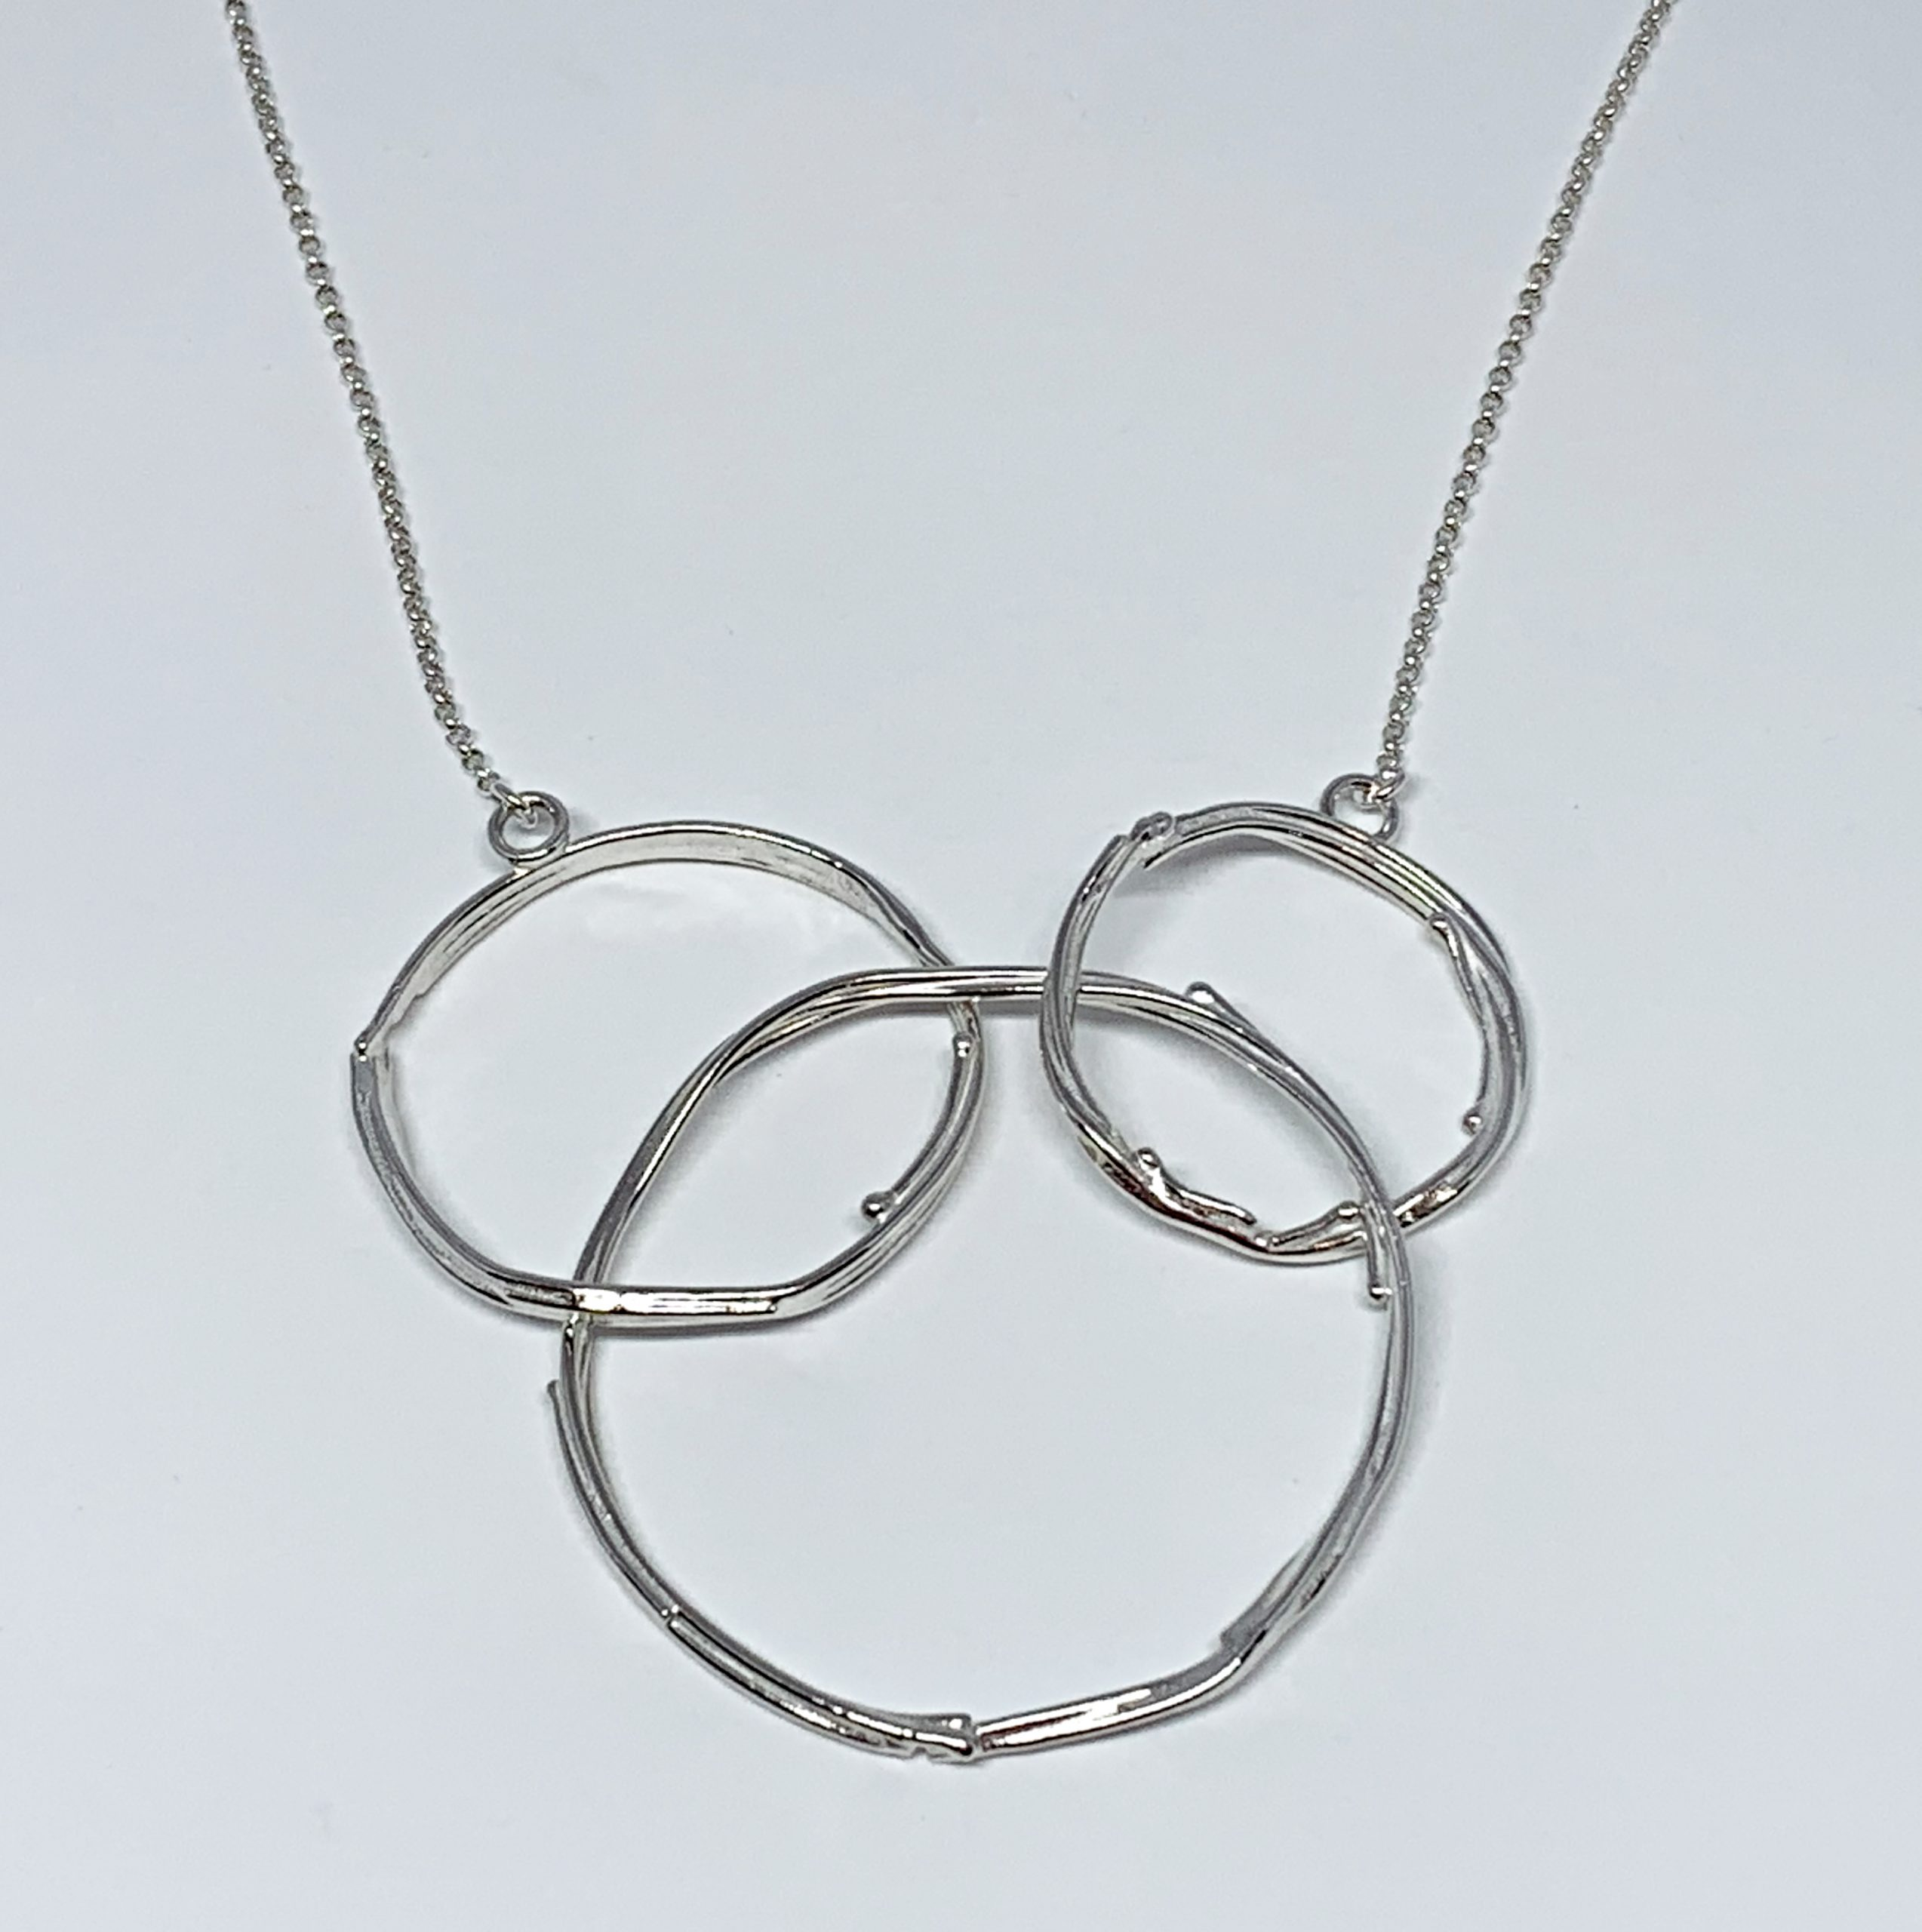 Sterling silver necklace by A&R Jewellery | Effusion Art Gallery + Cast Glass Studio, Invermere BC